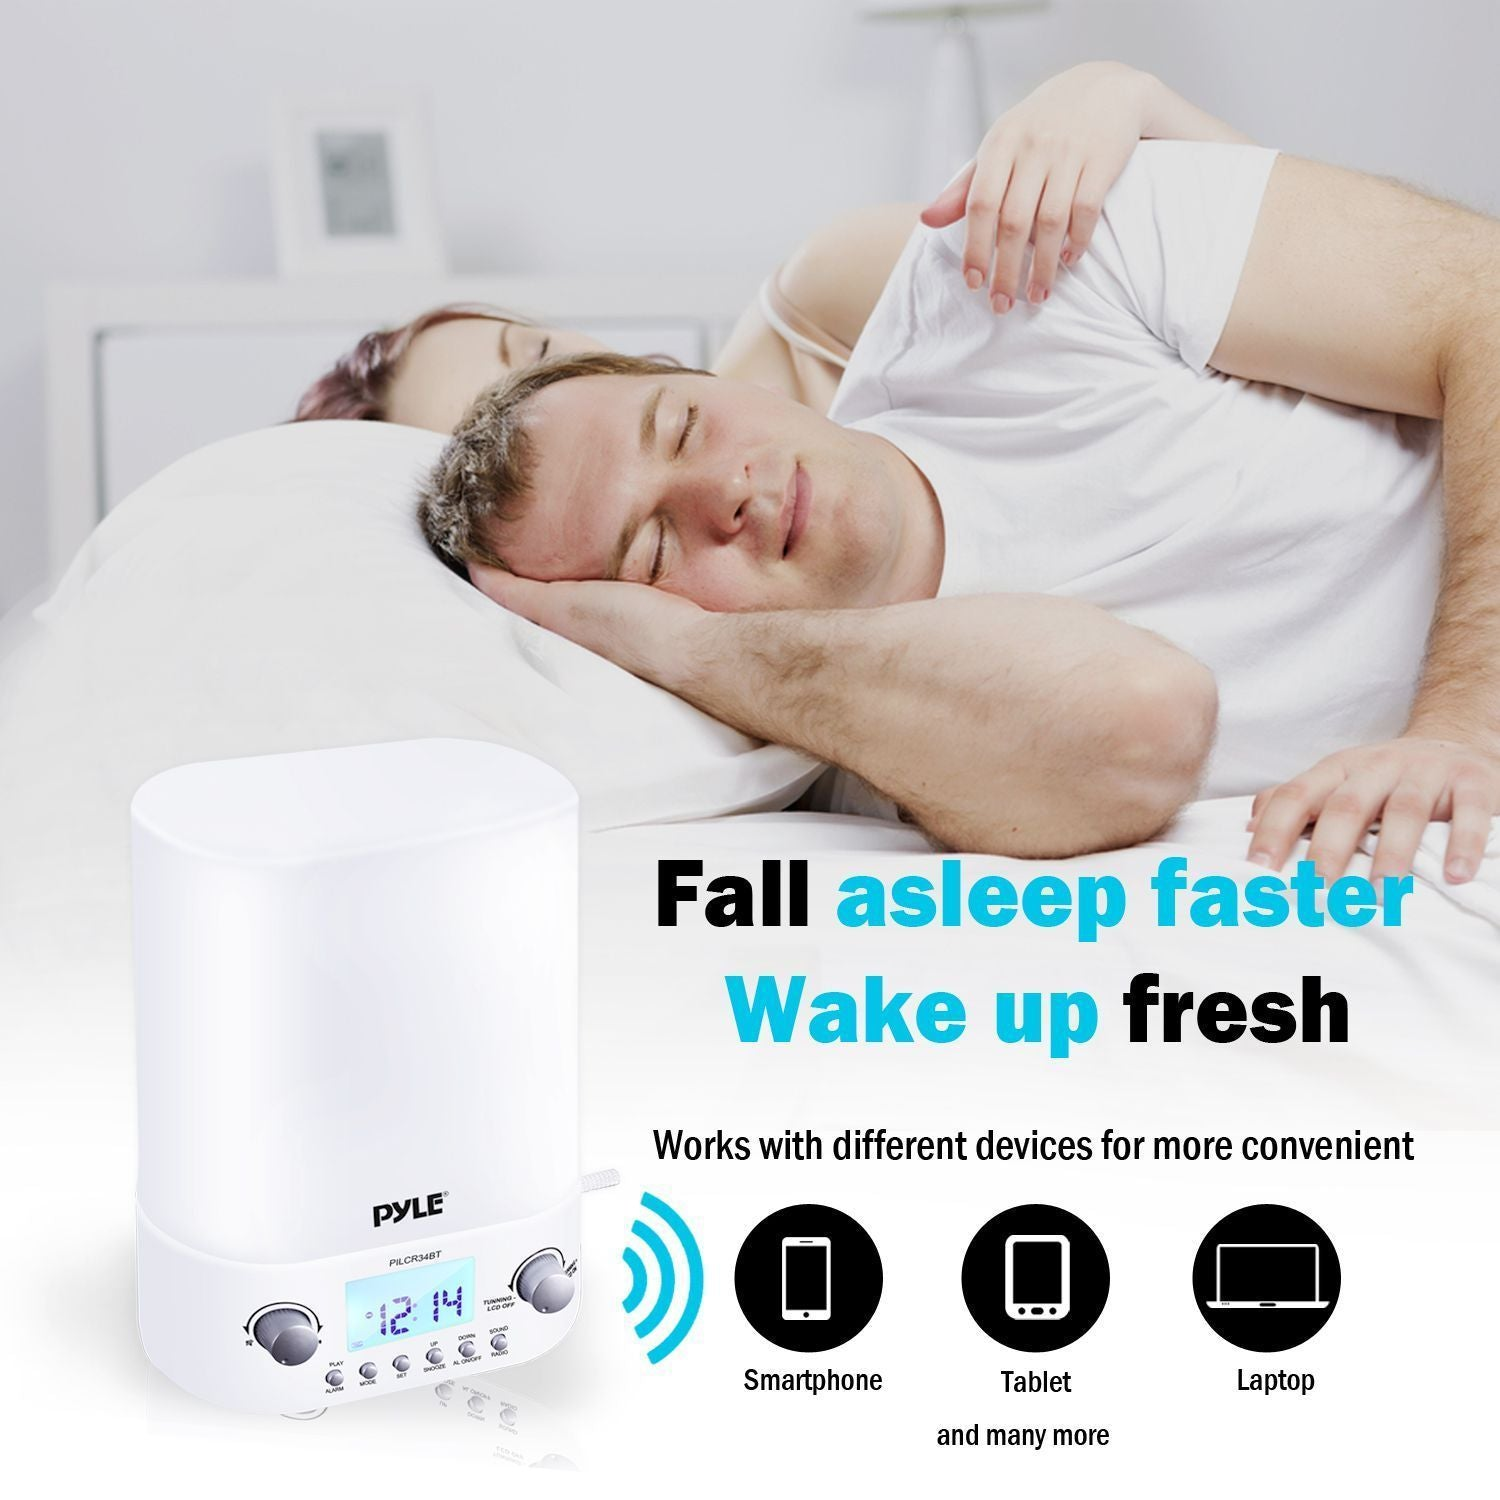 Pyle Compact Bluetooth Tabletop Alarm Clock, Stereo Speakers, LED Night Light, FM Radio, (PILCR34BT)